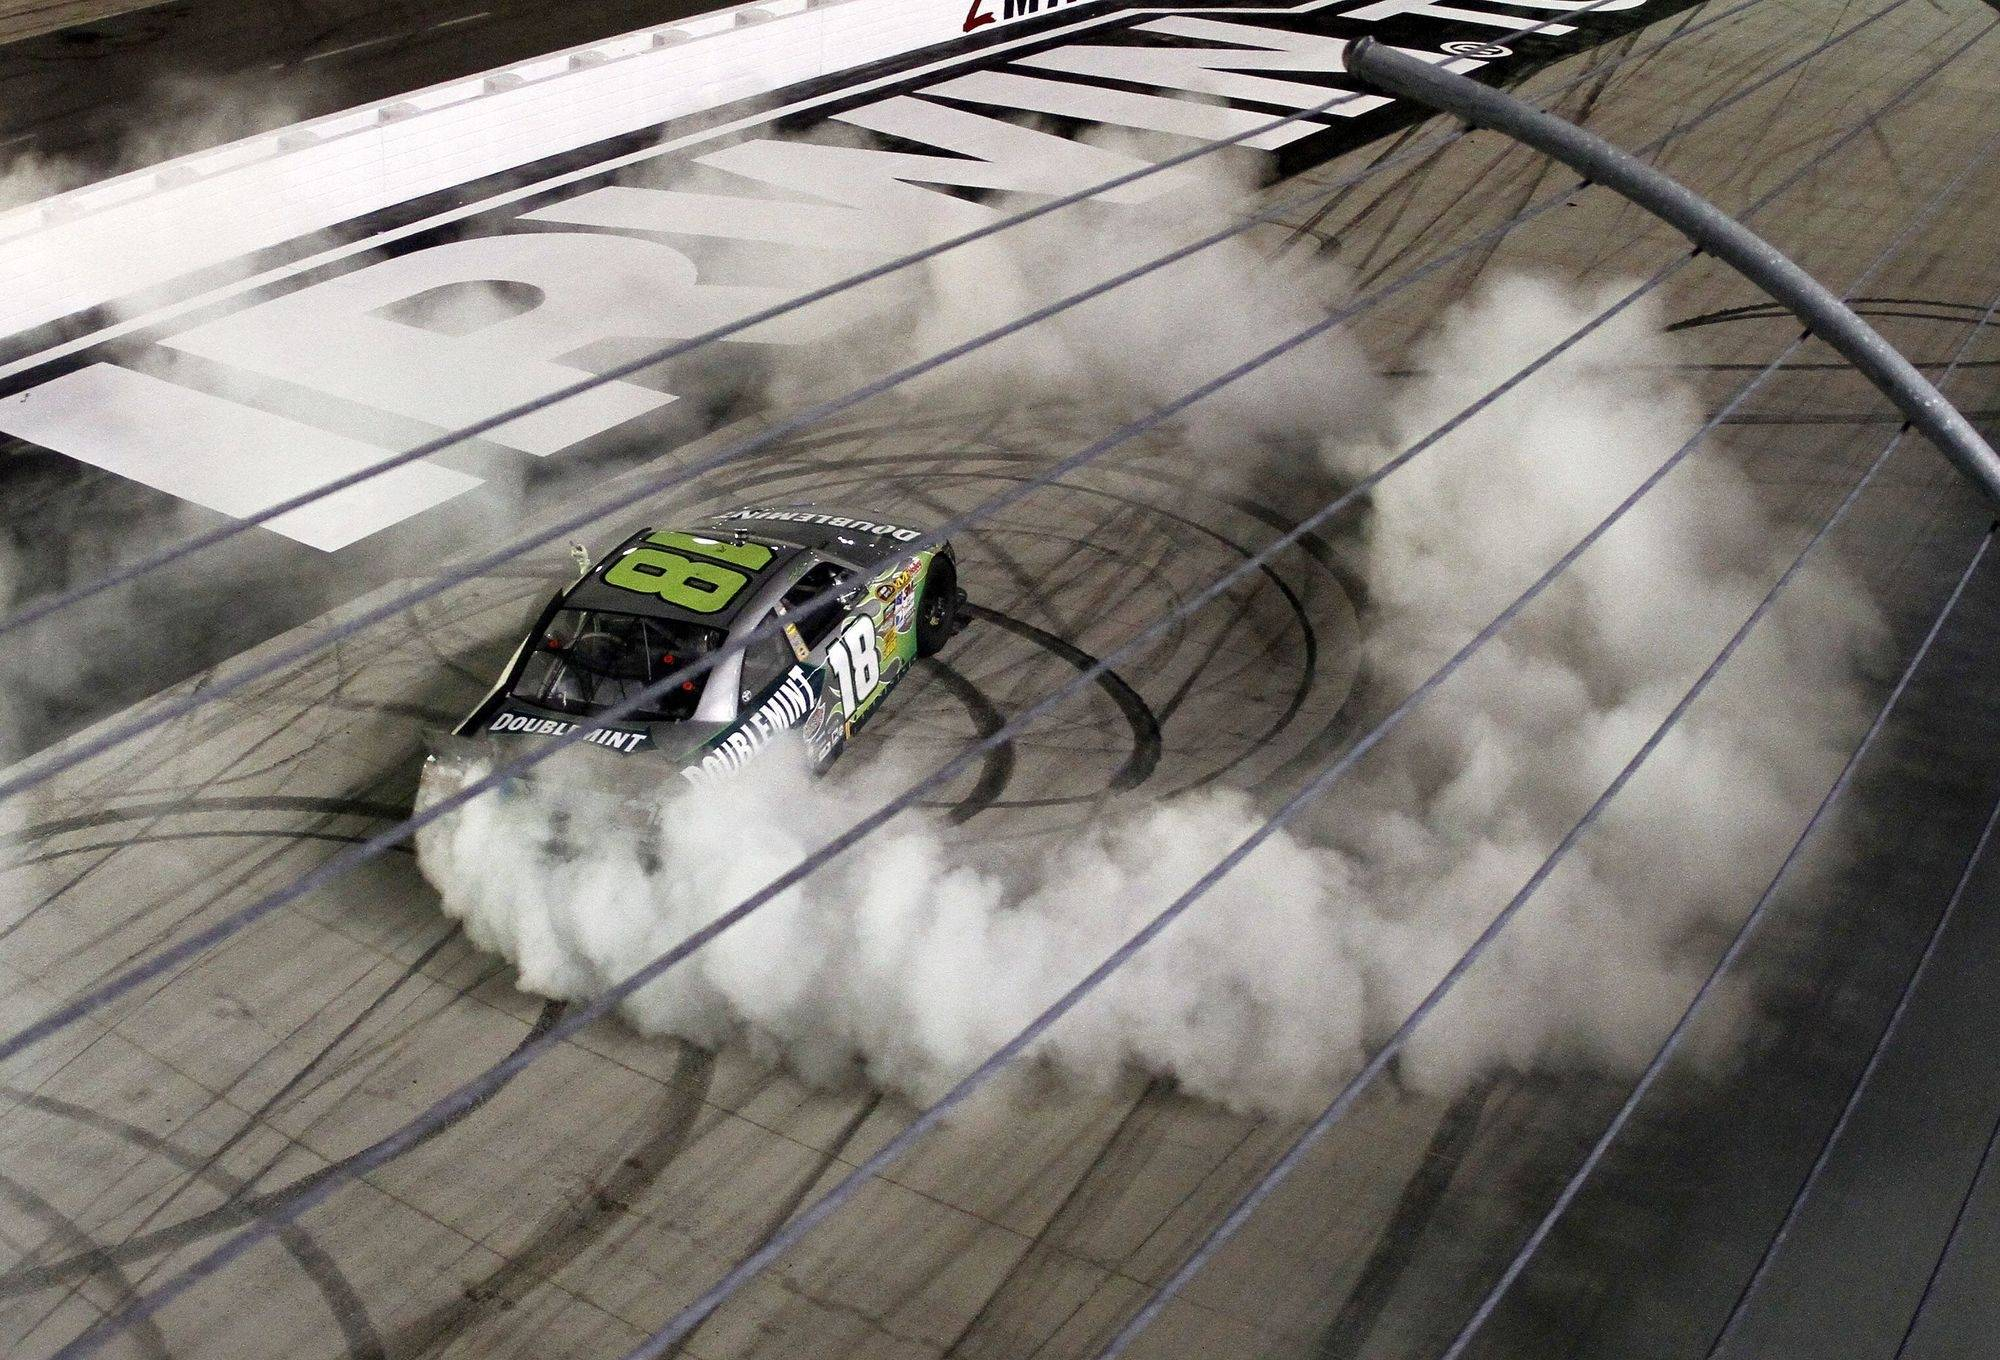 Kyle Busch does a burnout after winning the NASCAR Irwin Tools Night Race on Saturday in Bristol, Tenn. Busch won all three races held at Bristol this week.